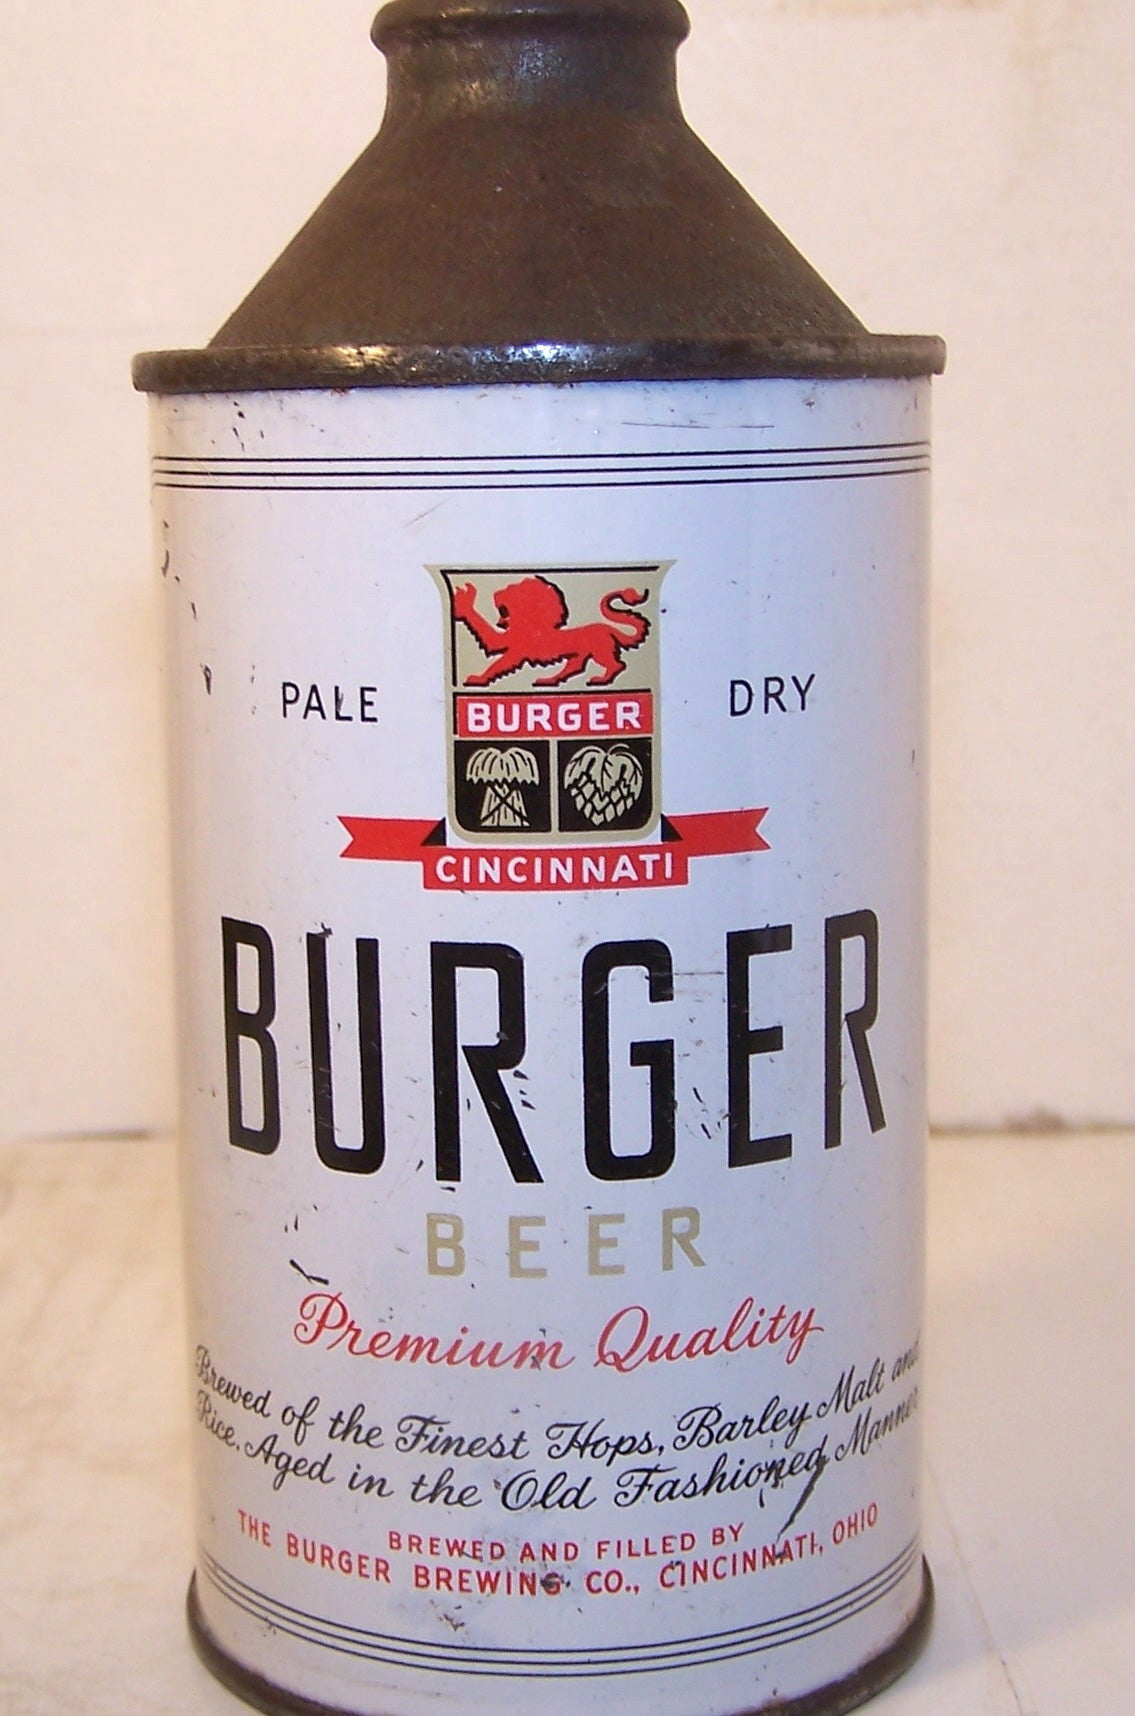 Burger Beer, USBC 155-28, Grade 1/1-sold 5/8/15